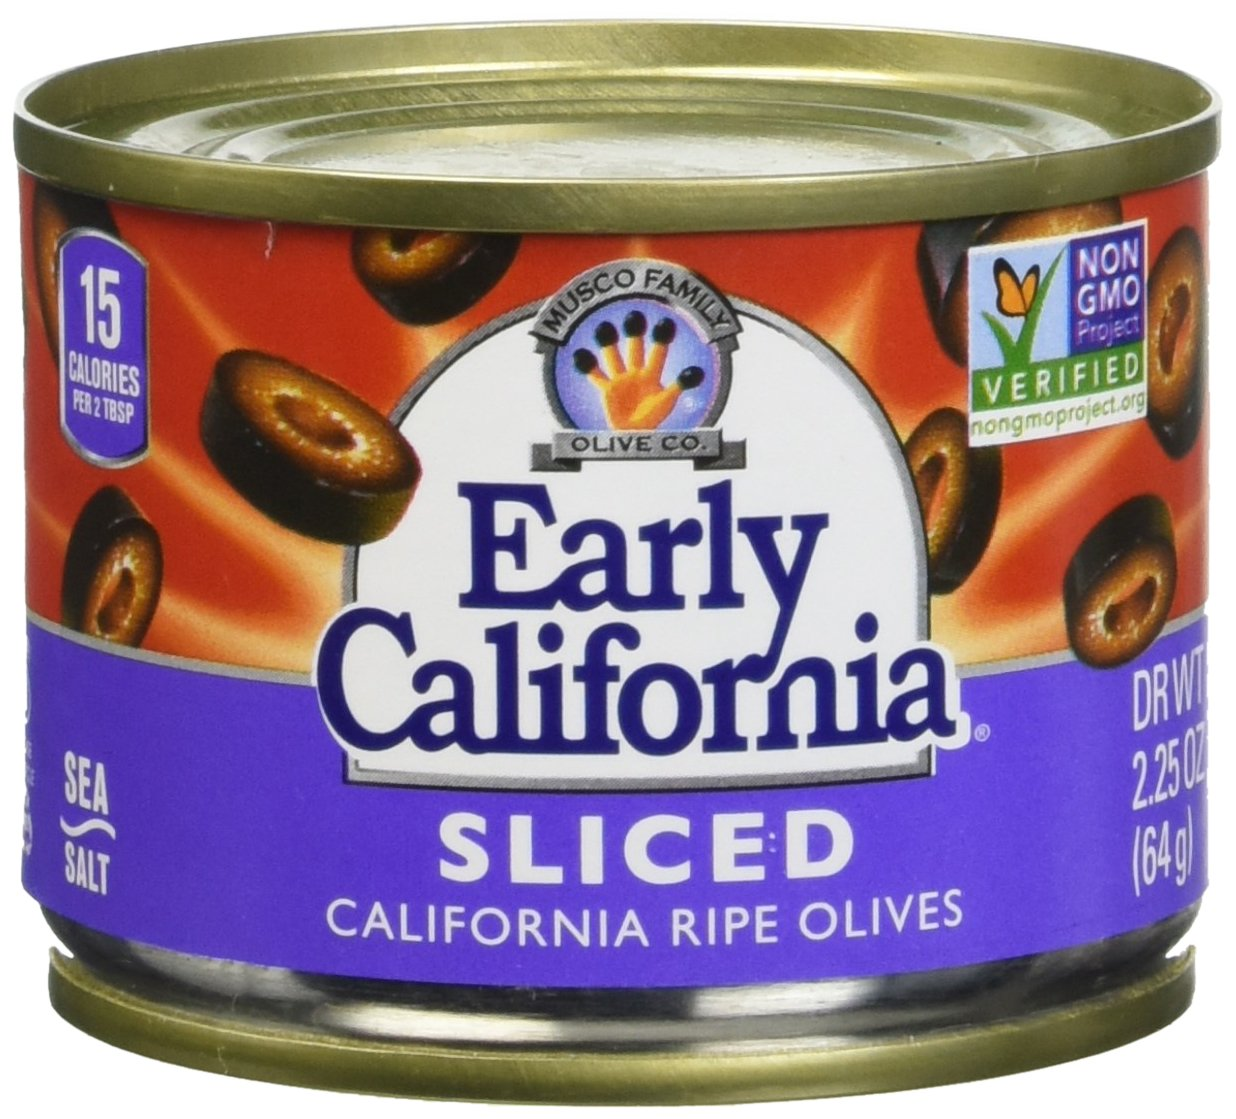 Early California Ripe Sliced Olives, 3.75 Pound